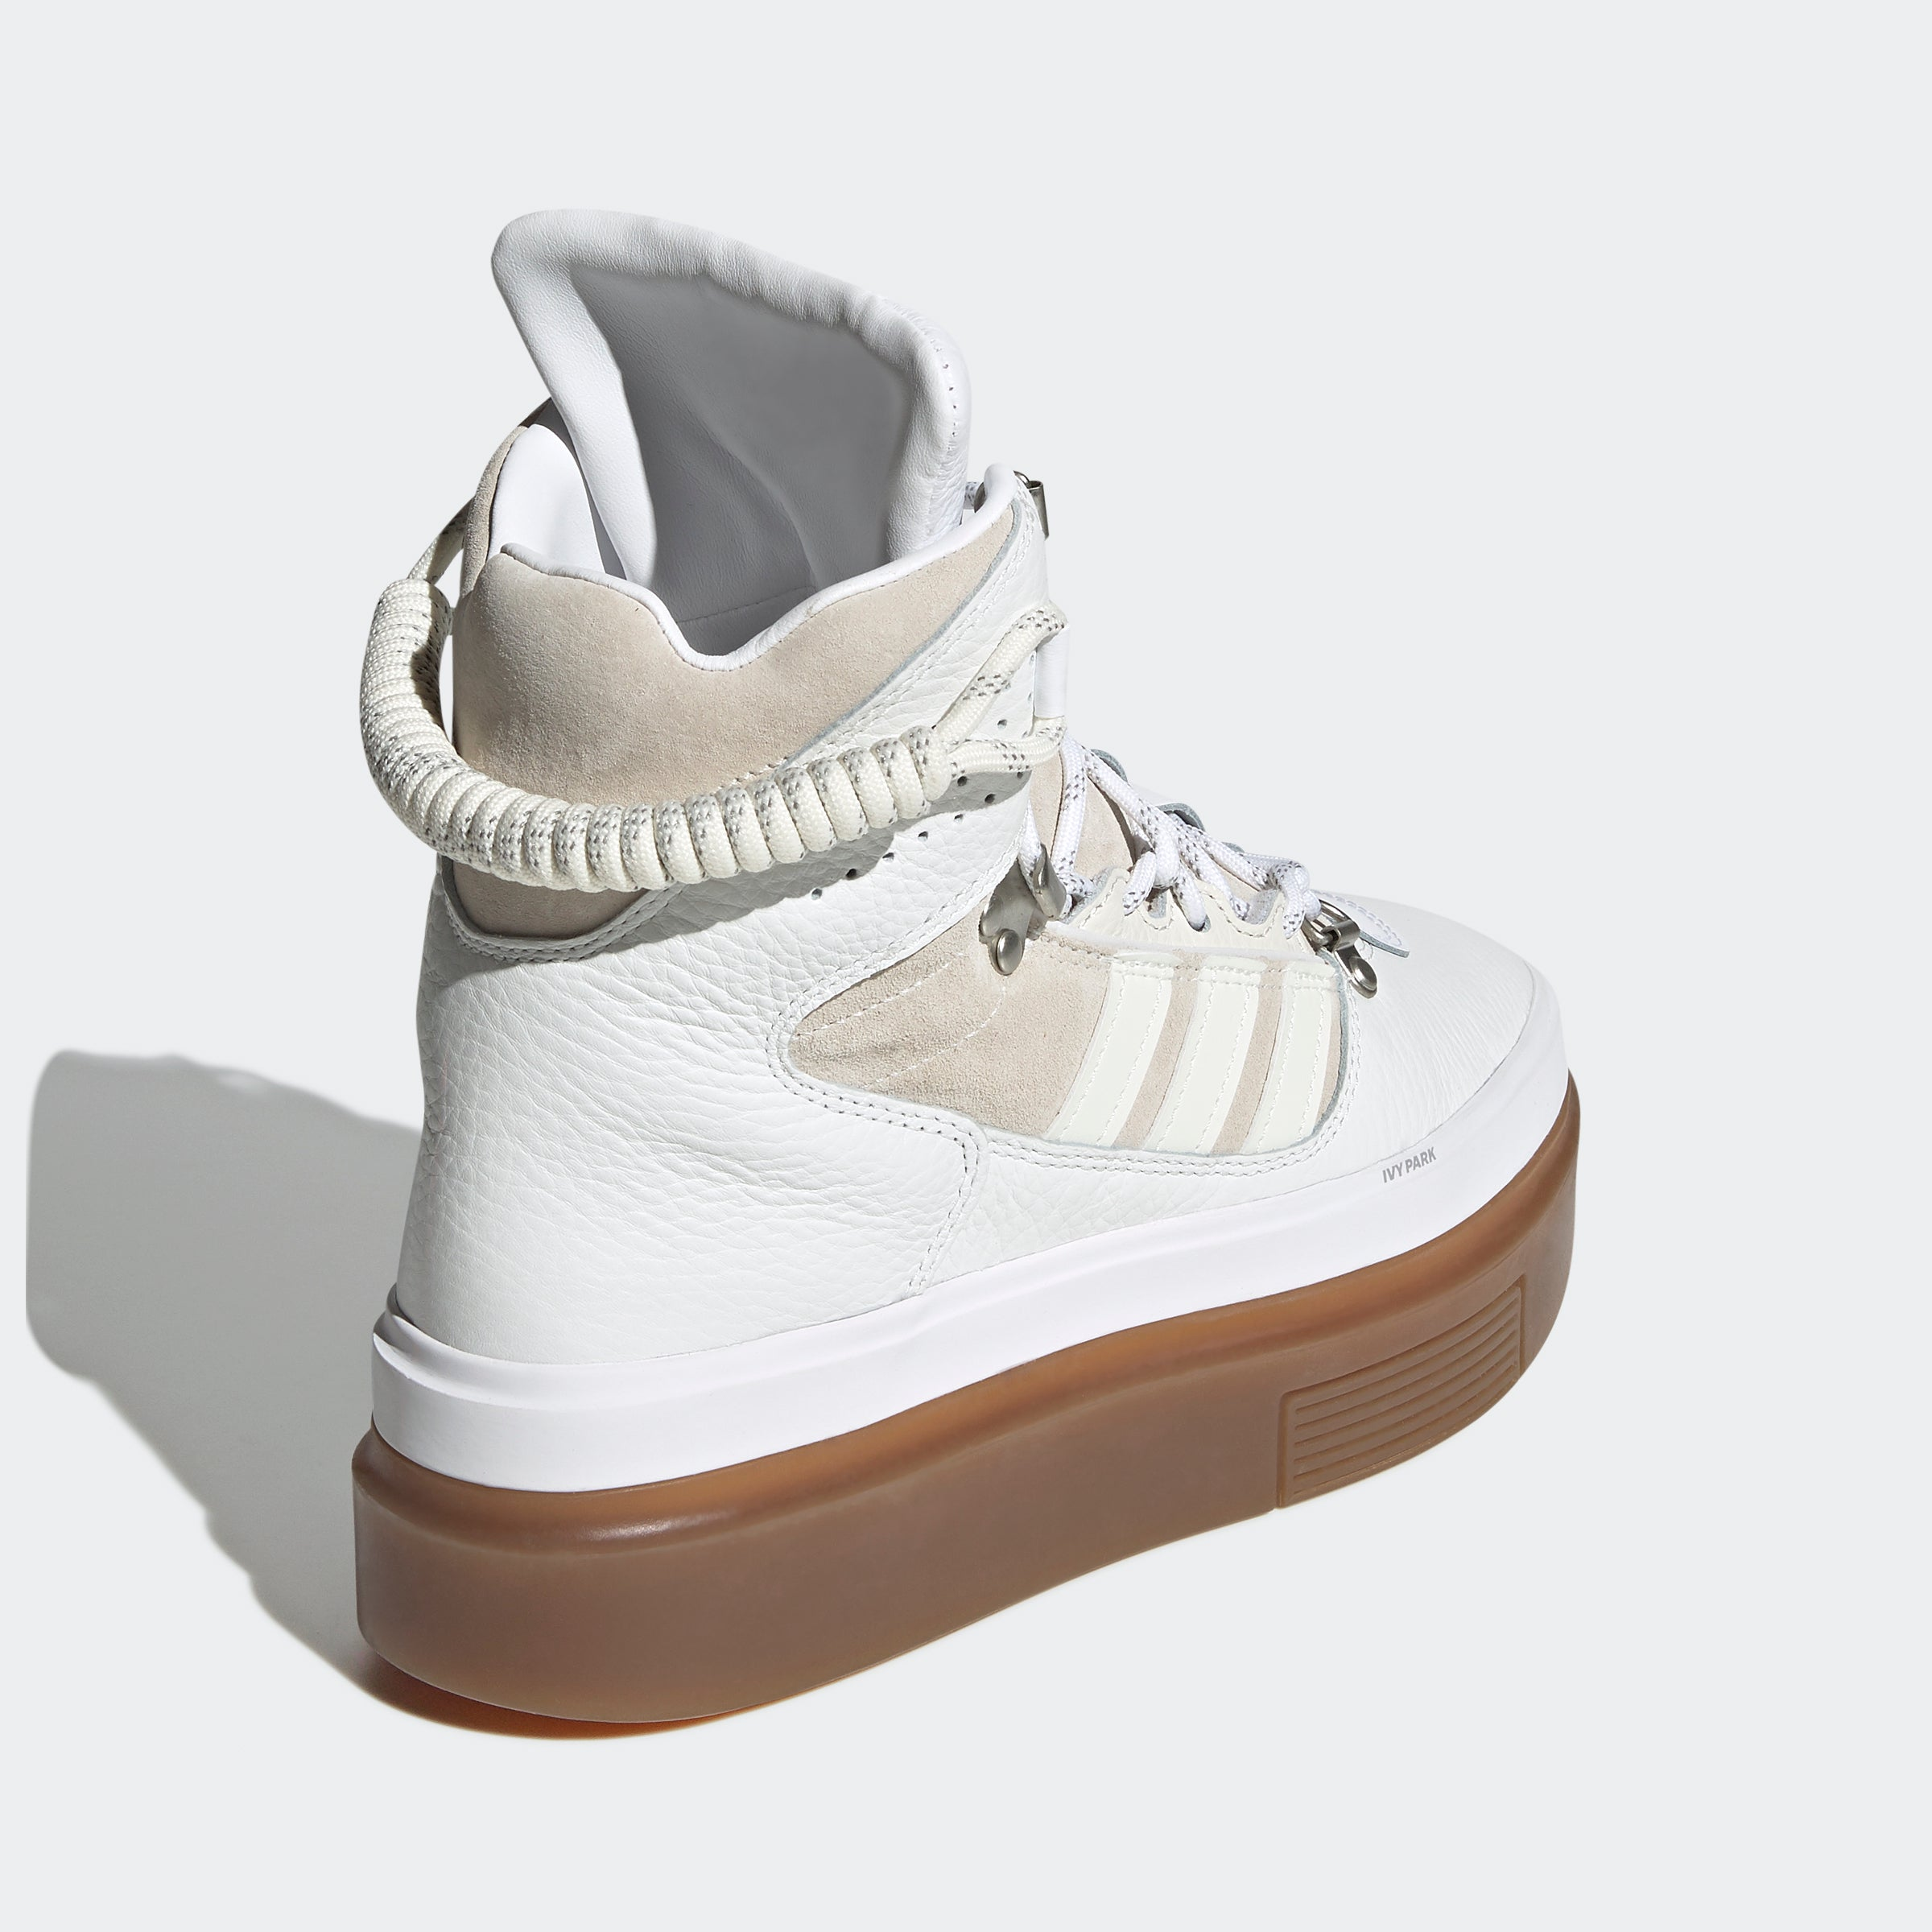 IVY PARK X ADIDAS SUPER SLEEK BOOT - WHITE